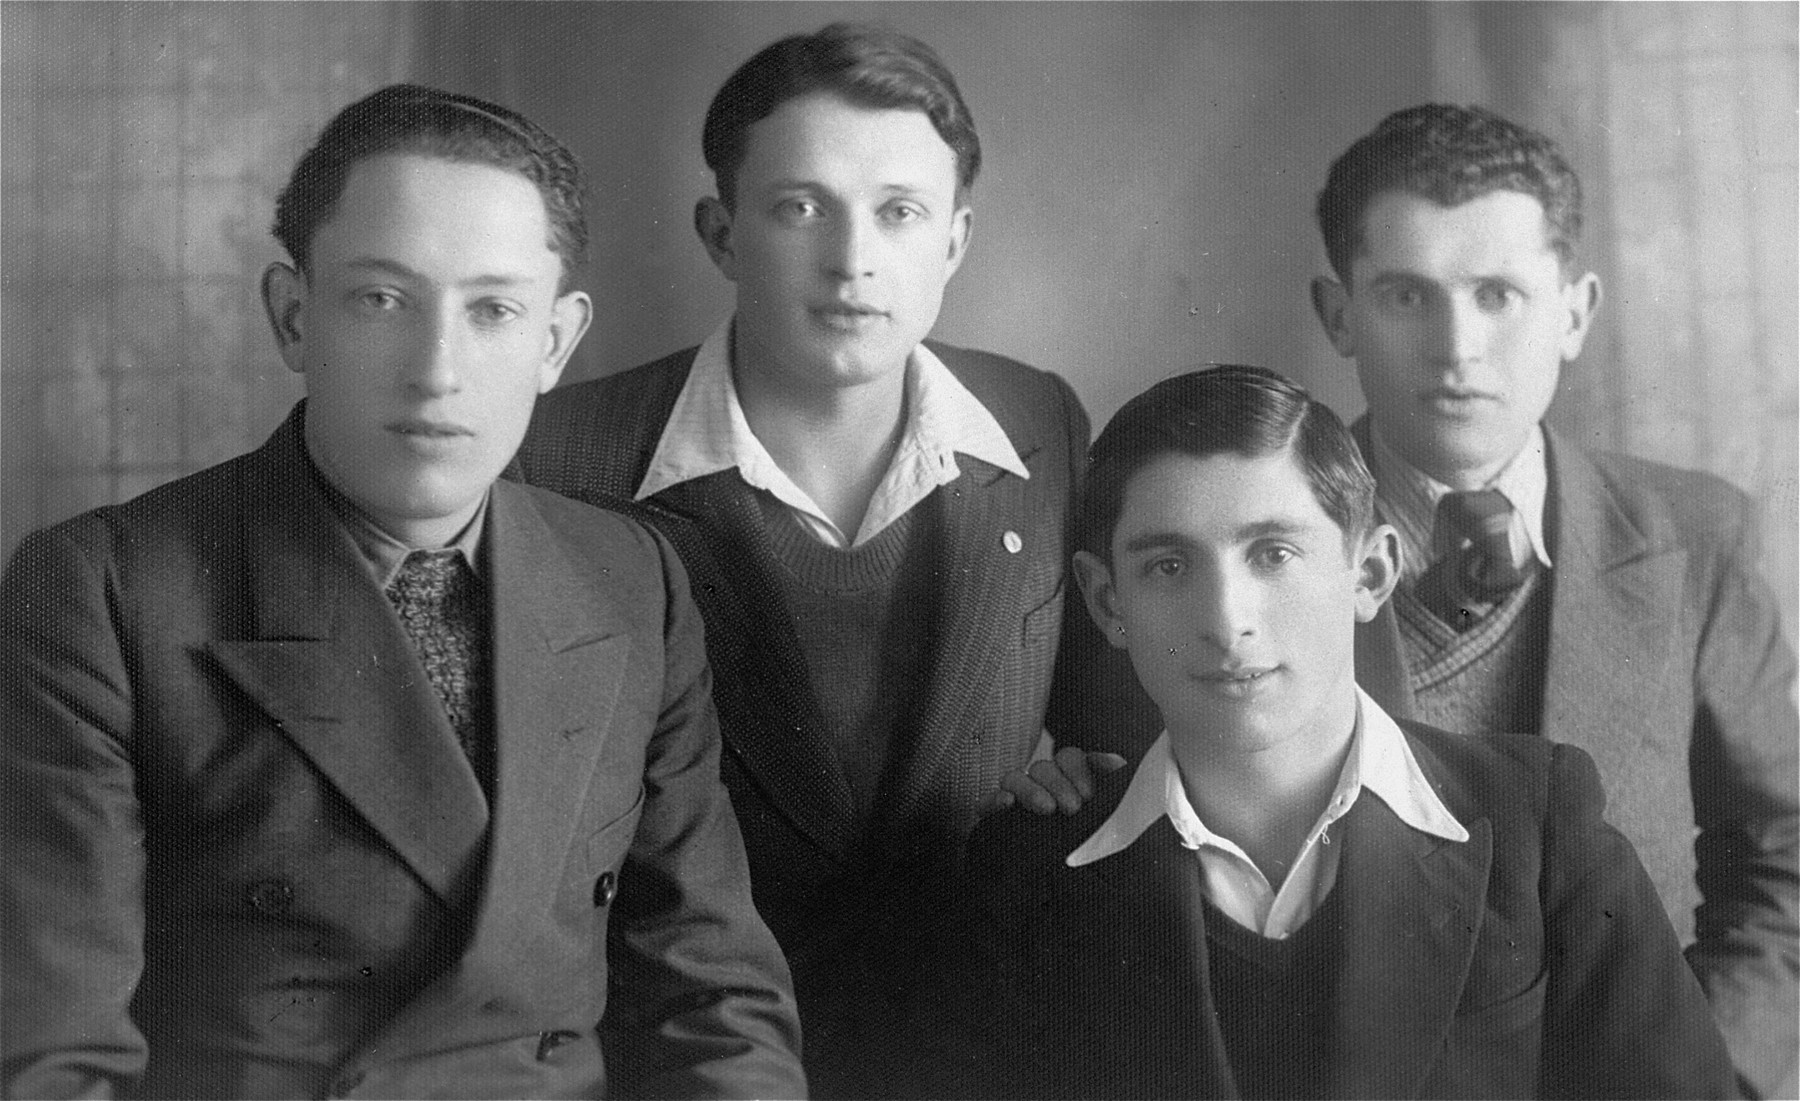 Group portrait of four young Jewish men who were friends of the donor's father, Eliezer Kaplan, from the Zionist movement in Lithuania.